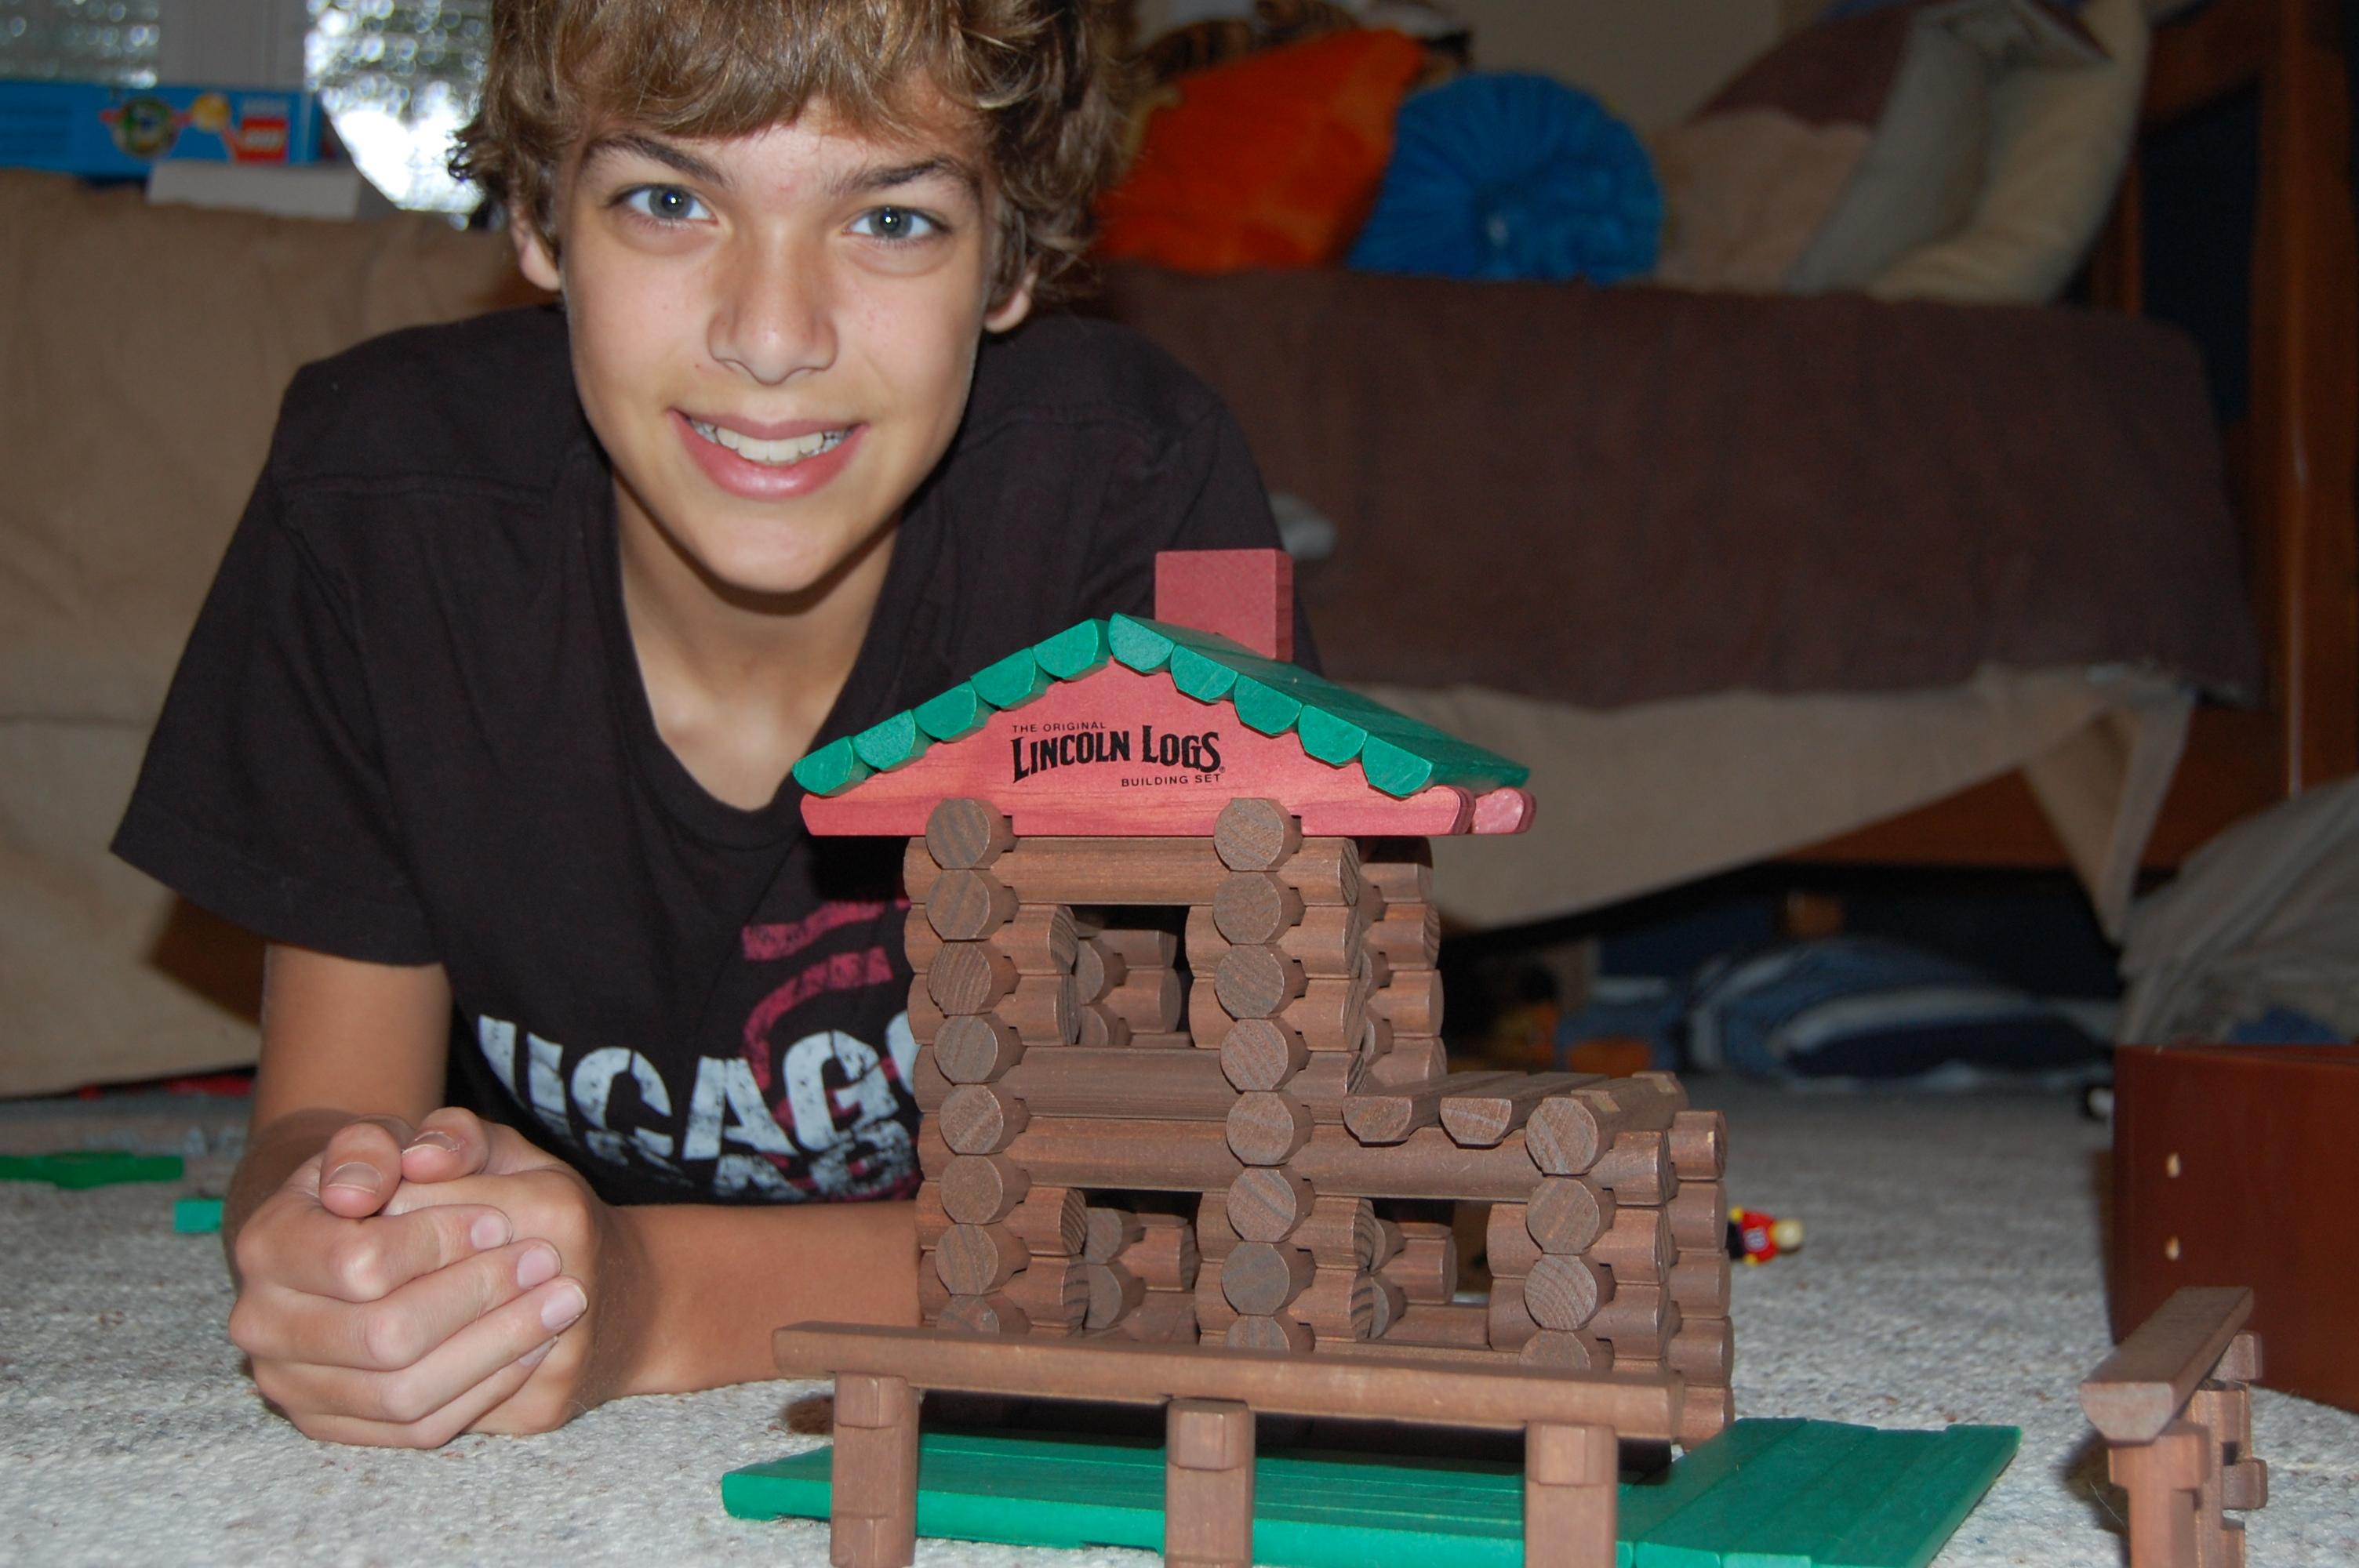 son building with Lincoln Logs